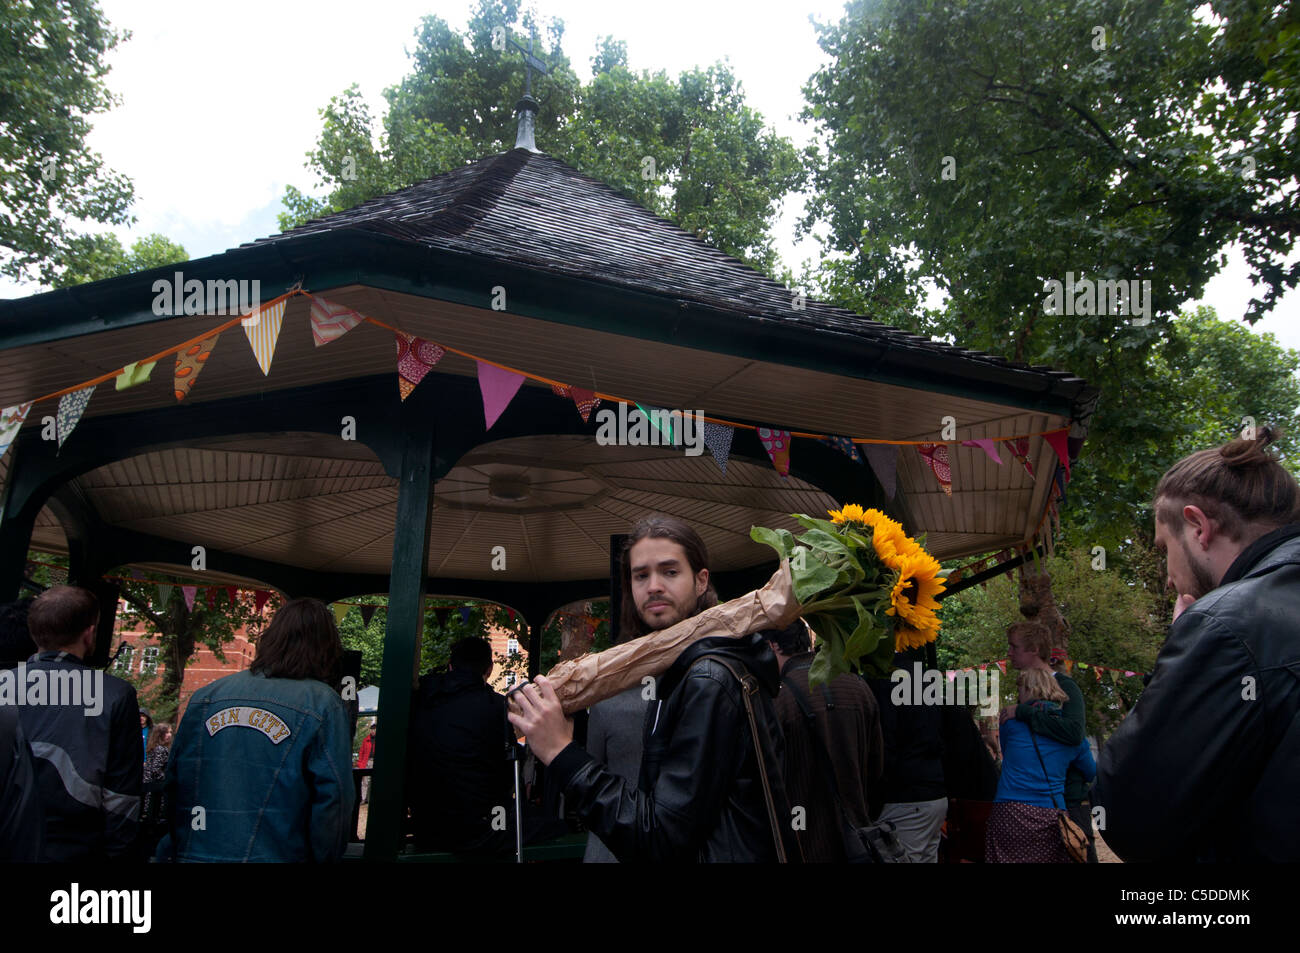 Arnold Circus Shoreditch, London July 2011. Man with bunch of sunflowers in front of bandstand. - Stock Image